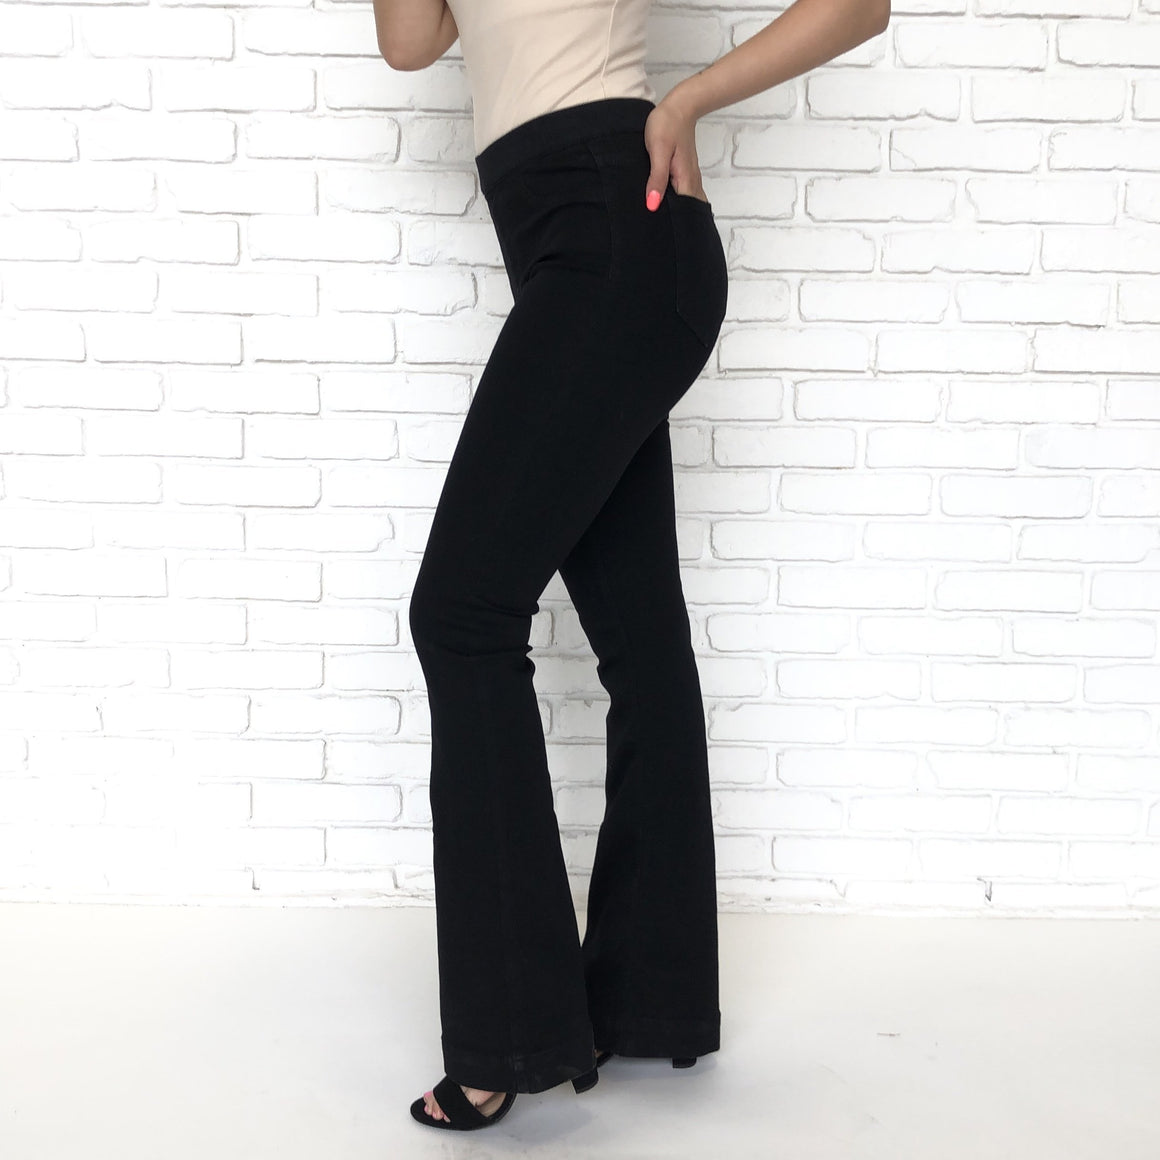 Derek Black Flared Bell Bottom Jegging Pants